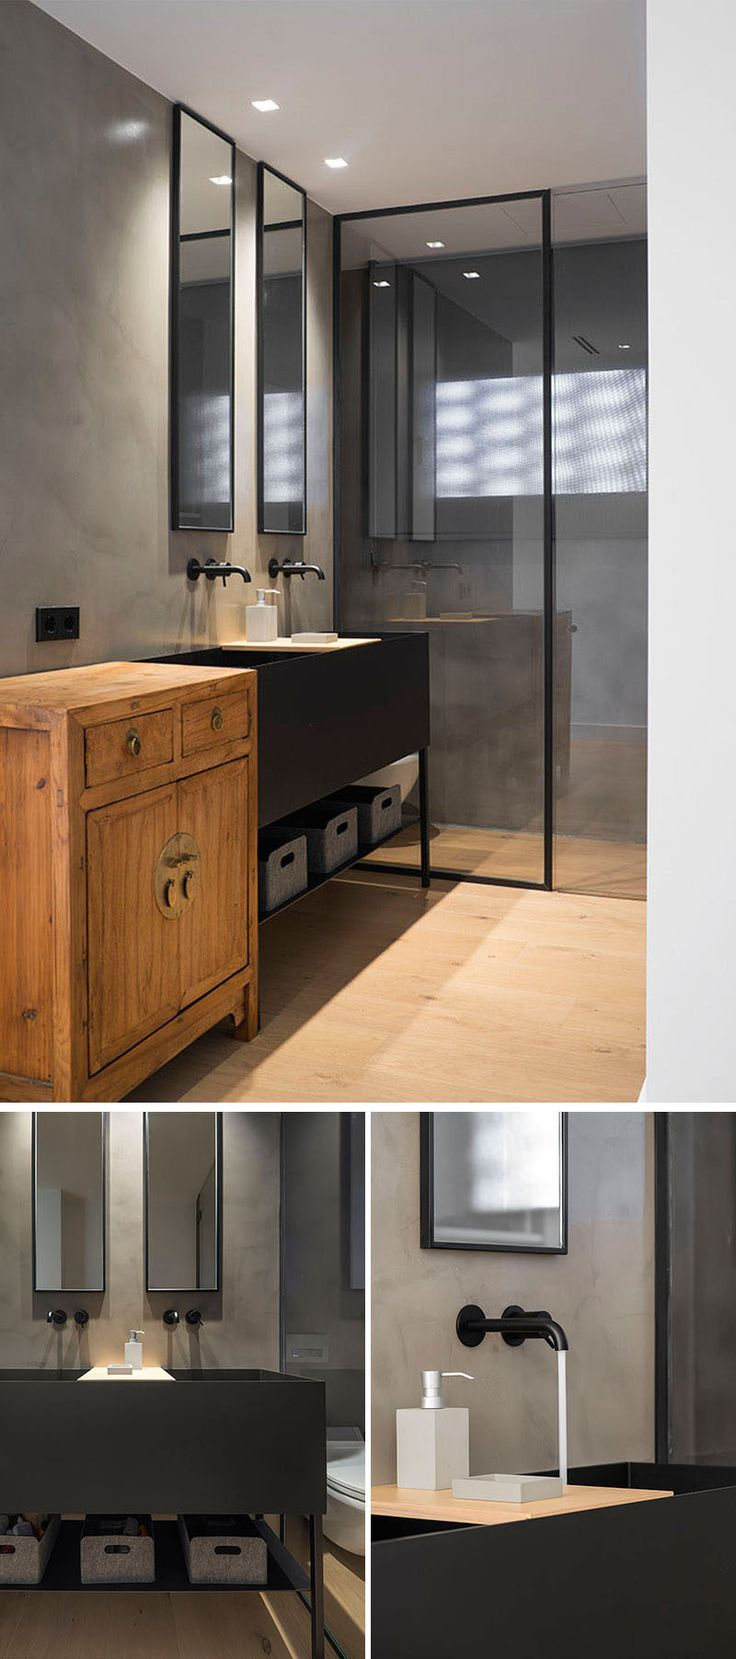 This modern bathroom has a black framed, glass enclosed shower and a vanity area with two rectangular mirrors mounted above the large dual-faucet sink.